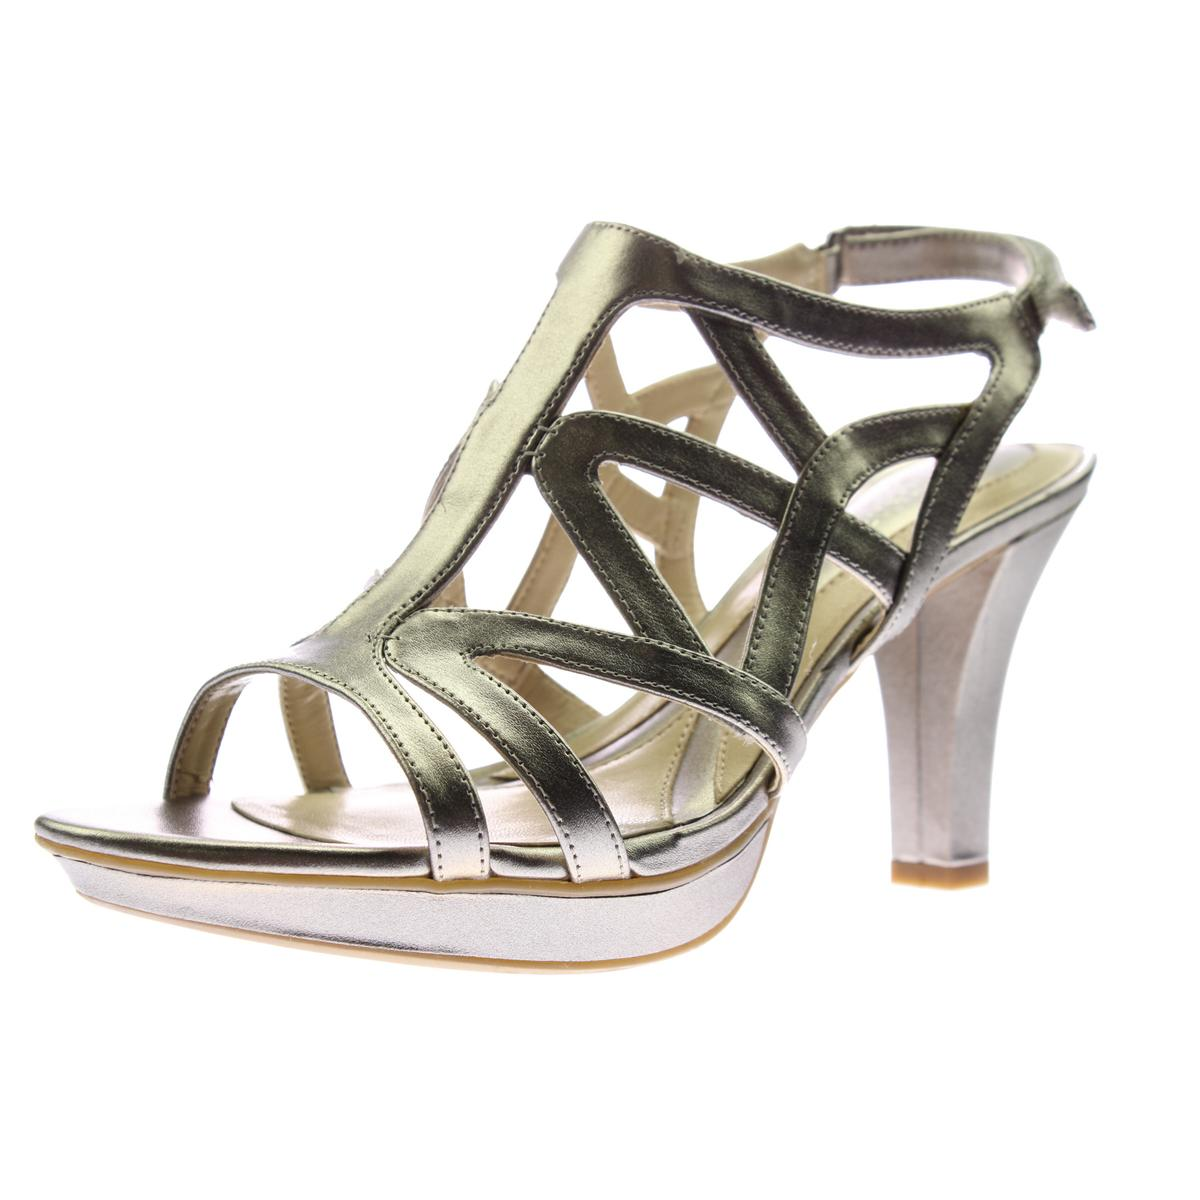 Naturalizer Womens Danya Faux Leather Dress Evening Sandals